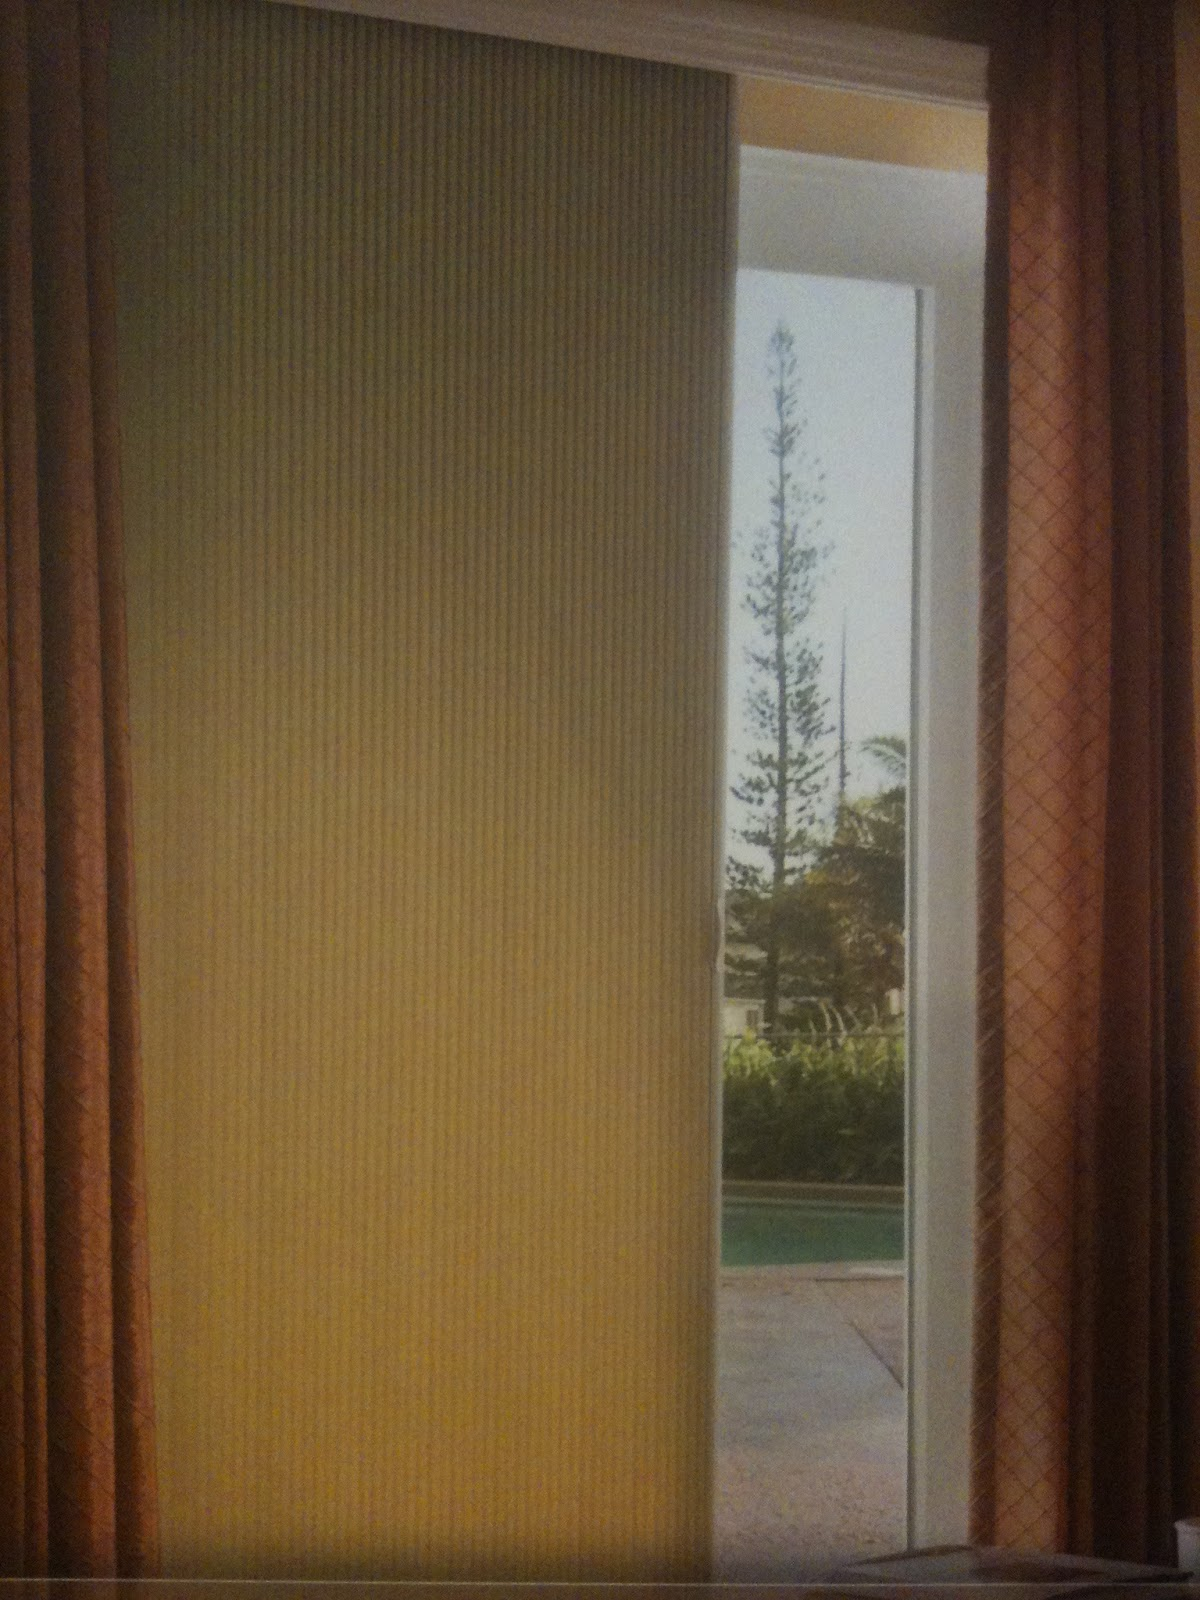 Cellular Shades With James Ross Designs On Maui Hawai I